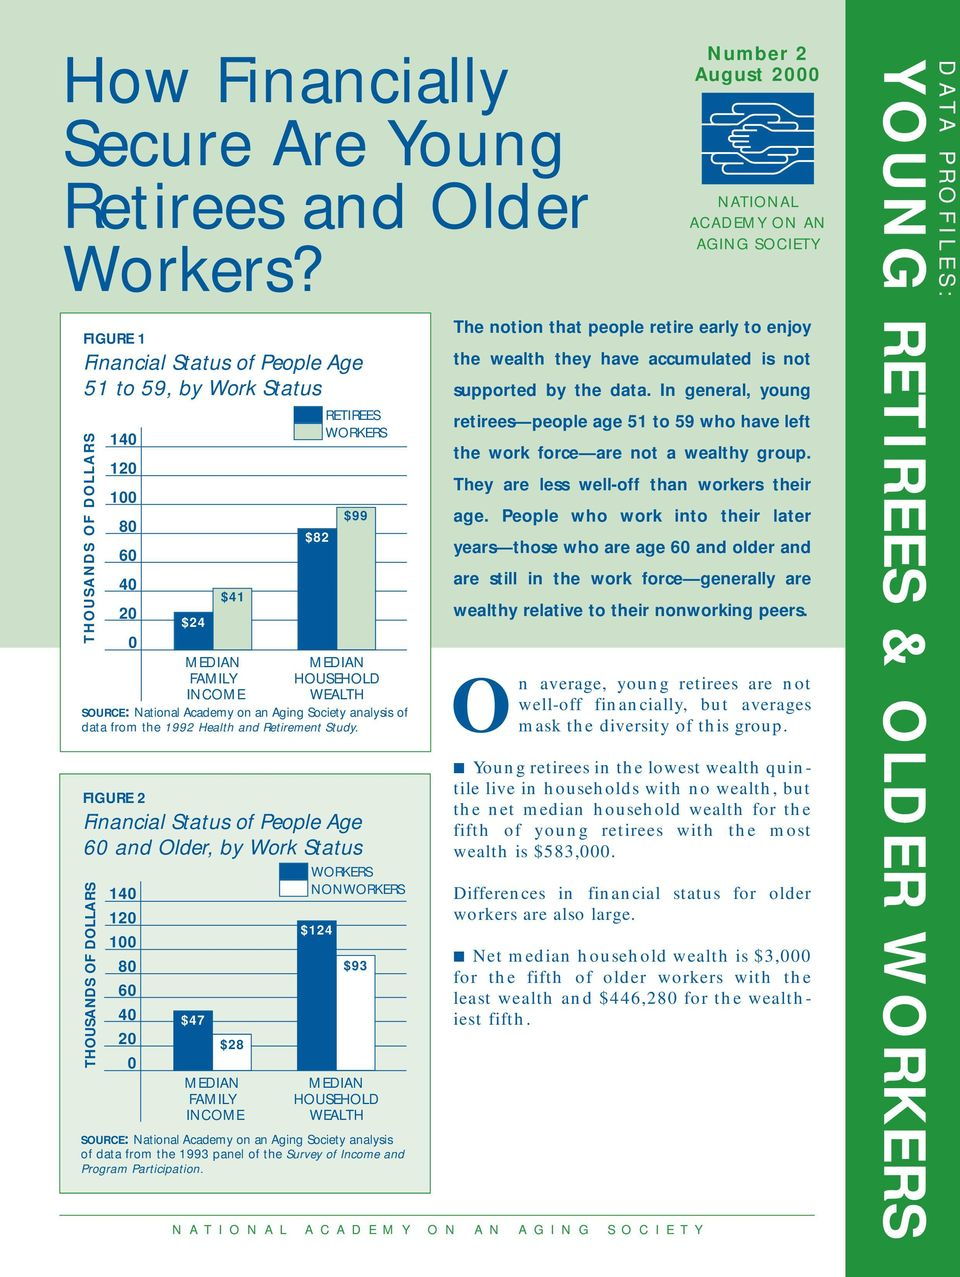 Aging Society analysis of data from the 1992 Health and Retirement Study.